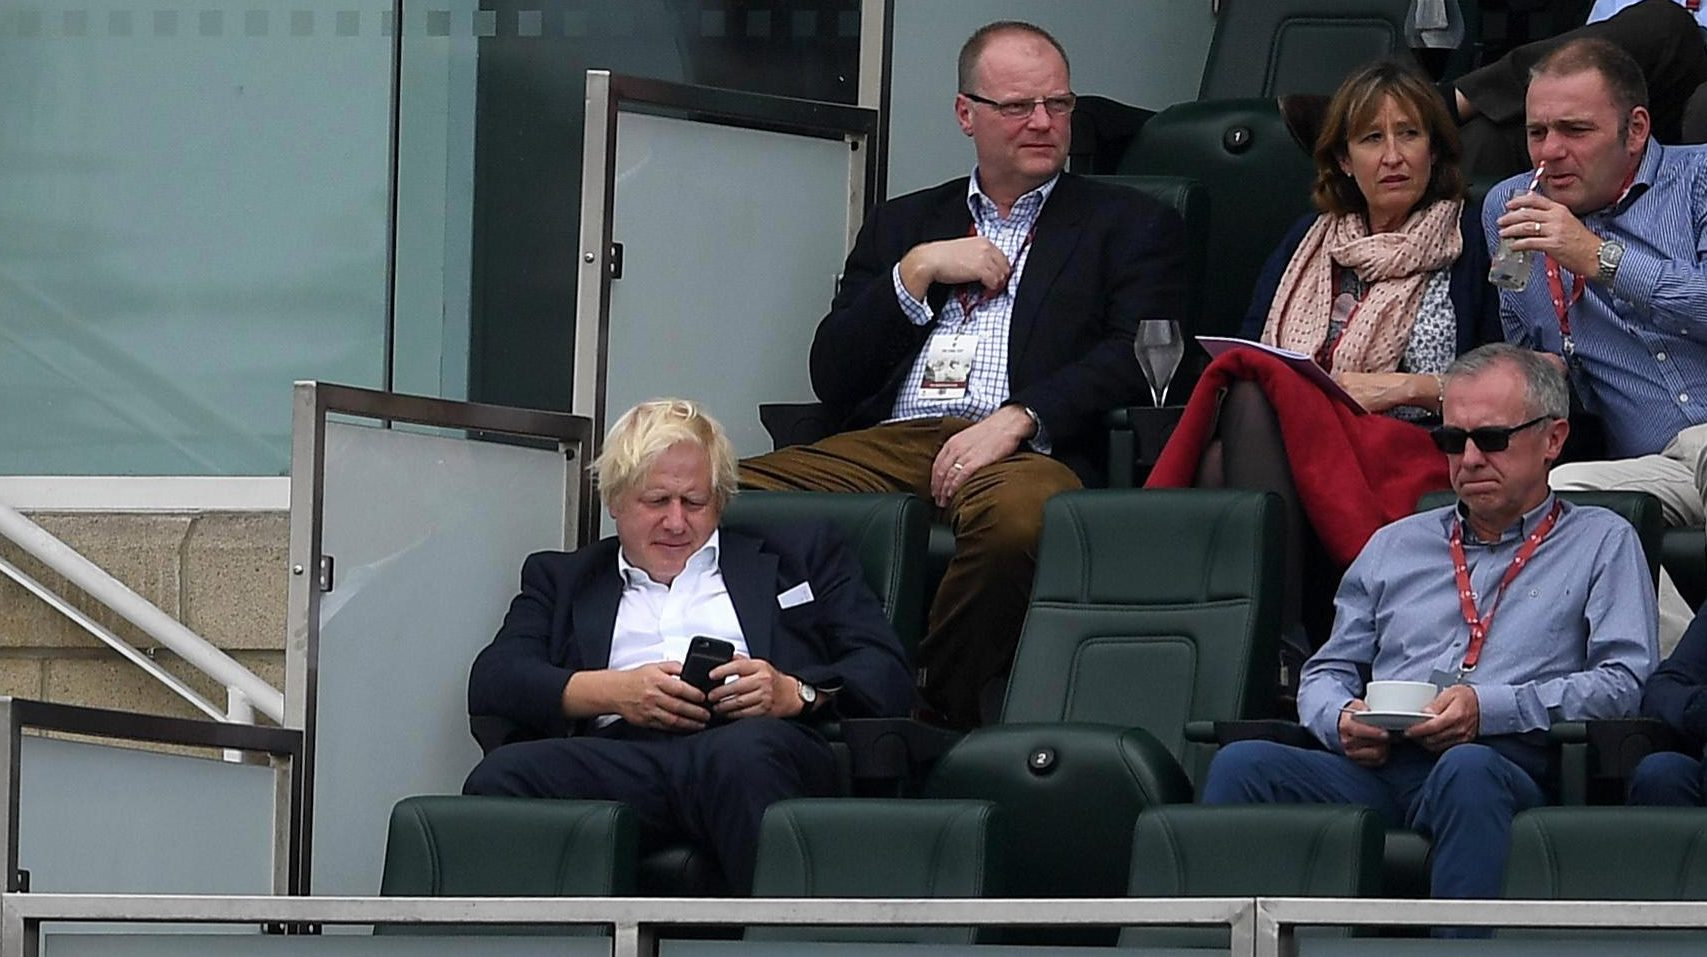 The former Mayor of London played on his phone while the action unfolded at the Oval